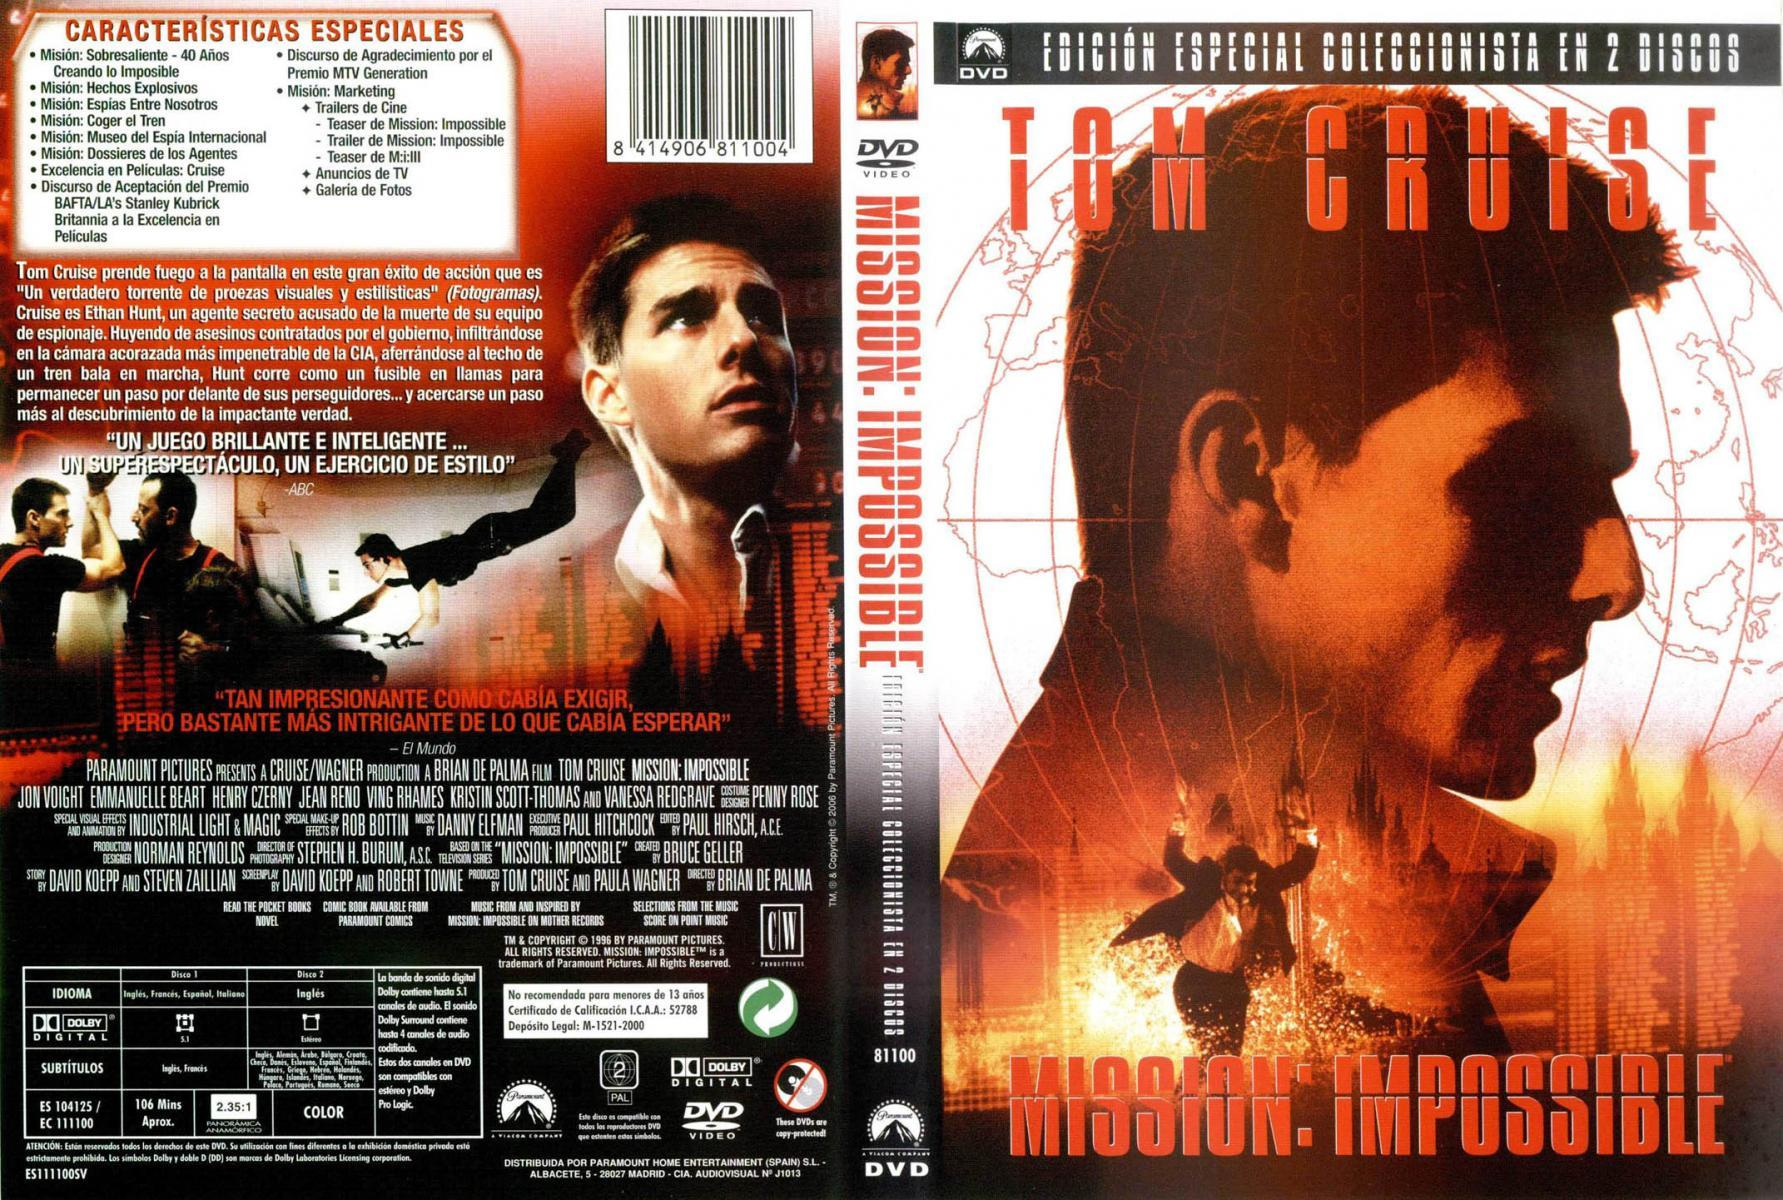 Mission Impossible 1996 Filmaffinity